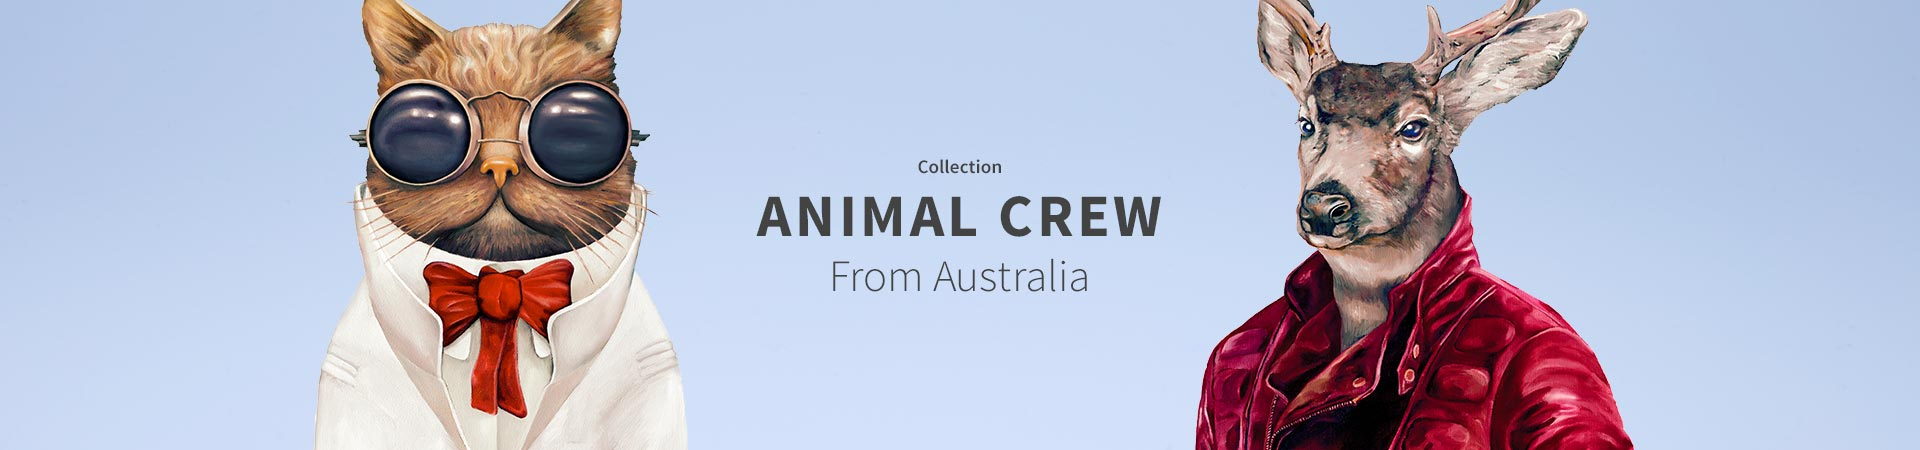 Collection Animal Crew